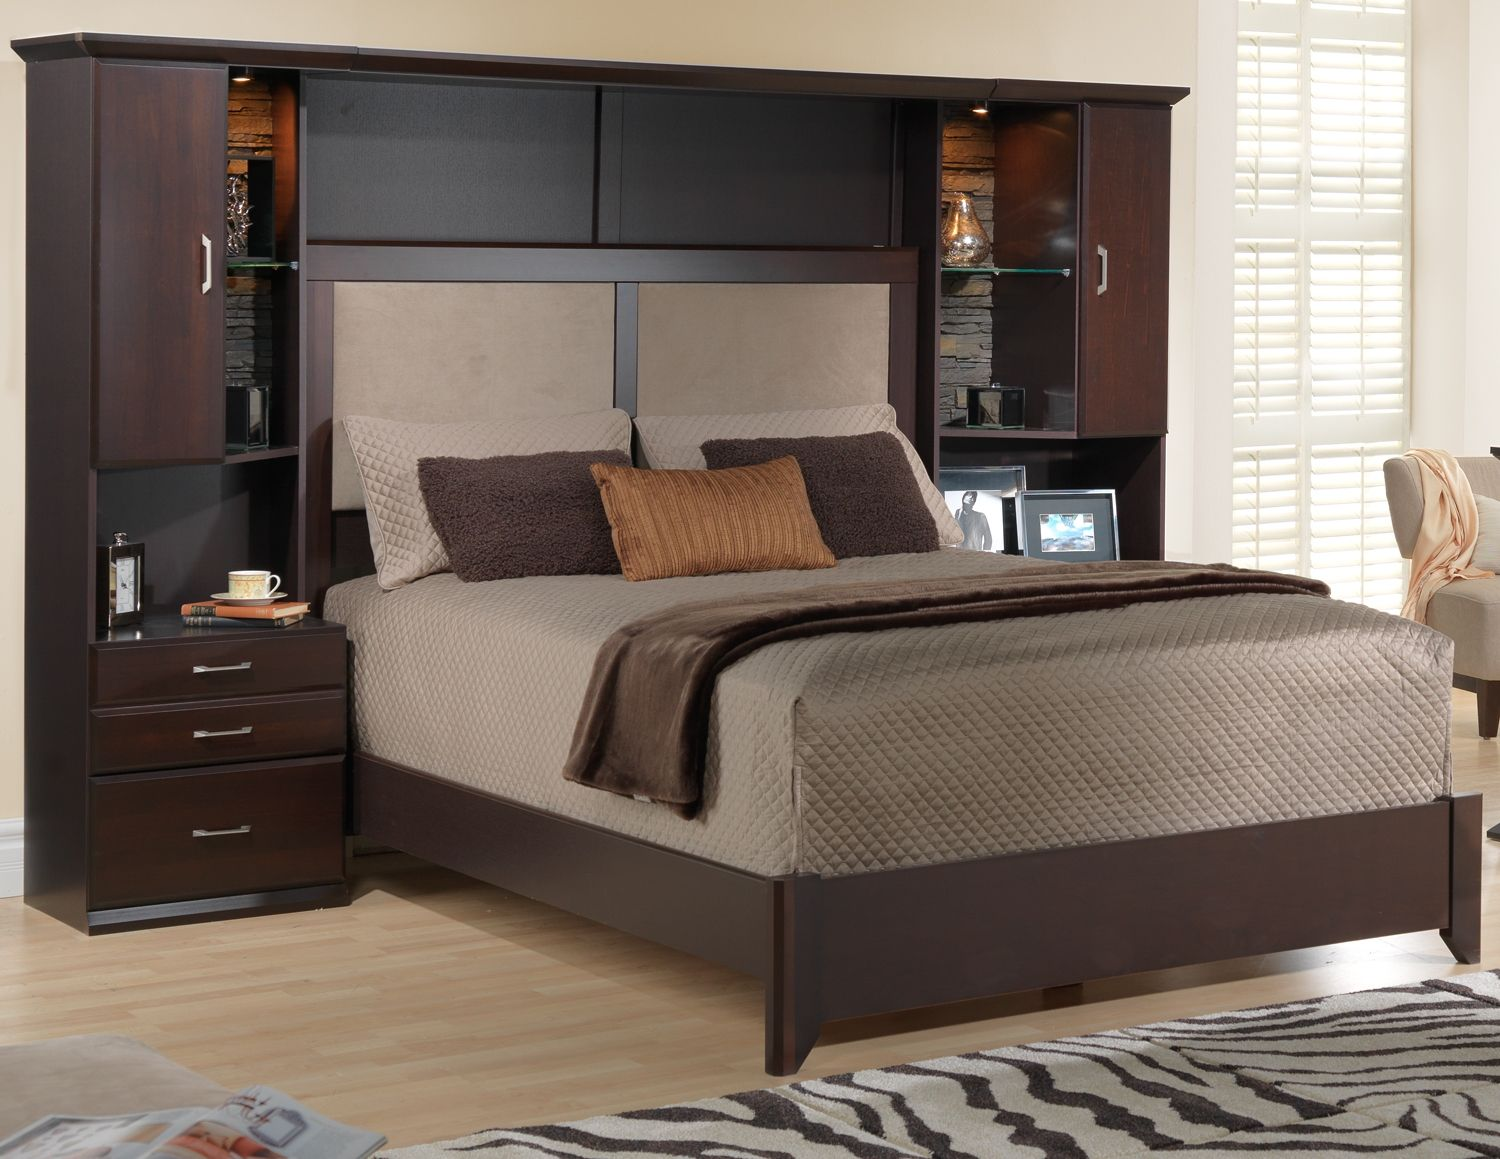 Sherwood Bedroom 6 Pc. Queen Wall Bed Package   Leonu0027s House Furniture,  Bedroom Furniture